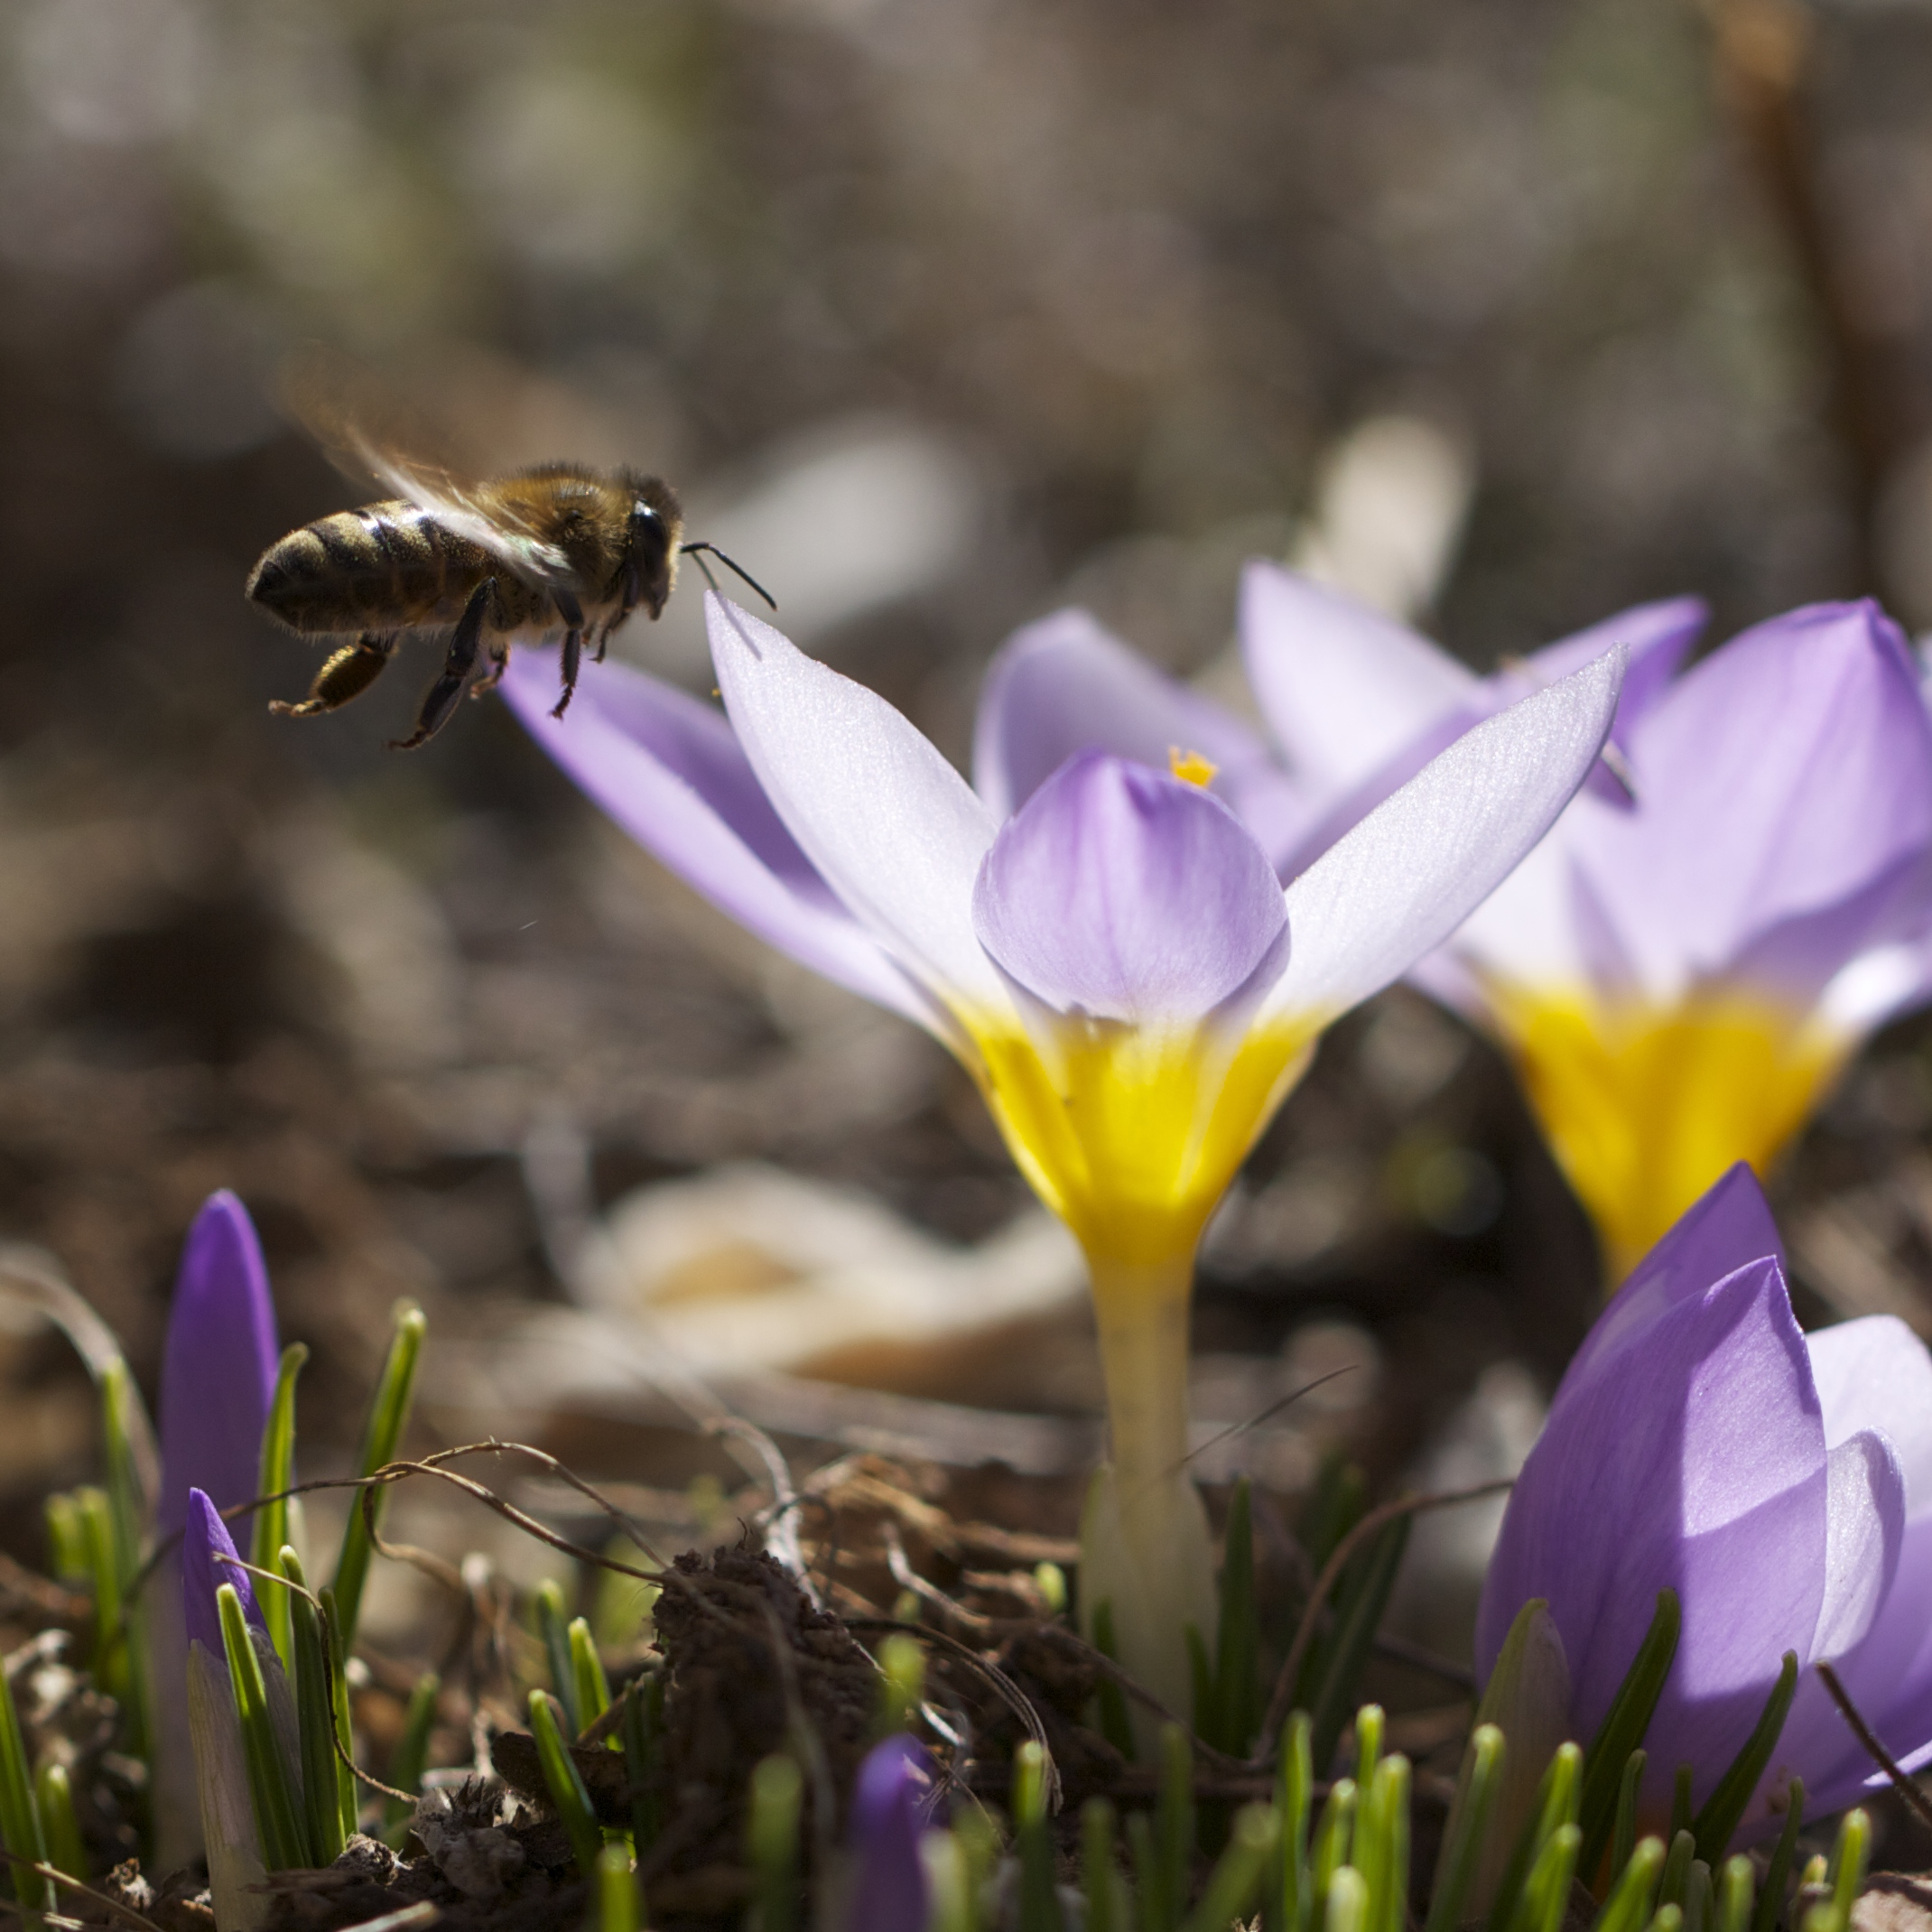 The return of bees to the early crocuses thrilled and salved my soul.